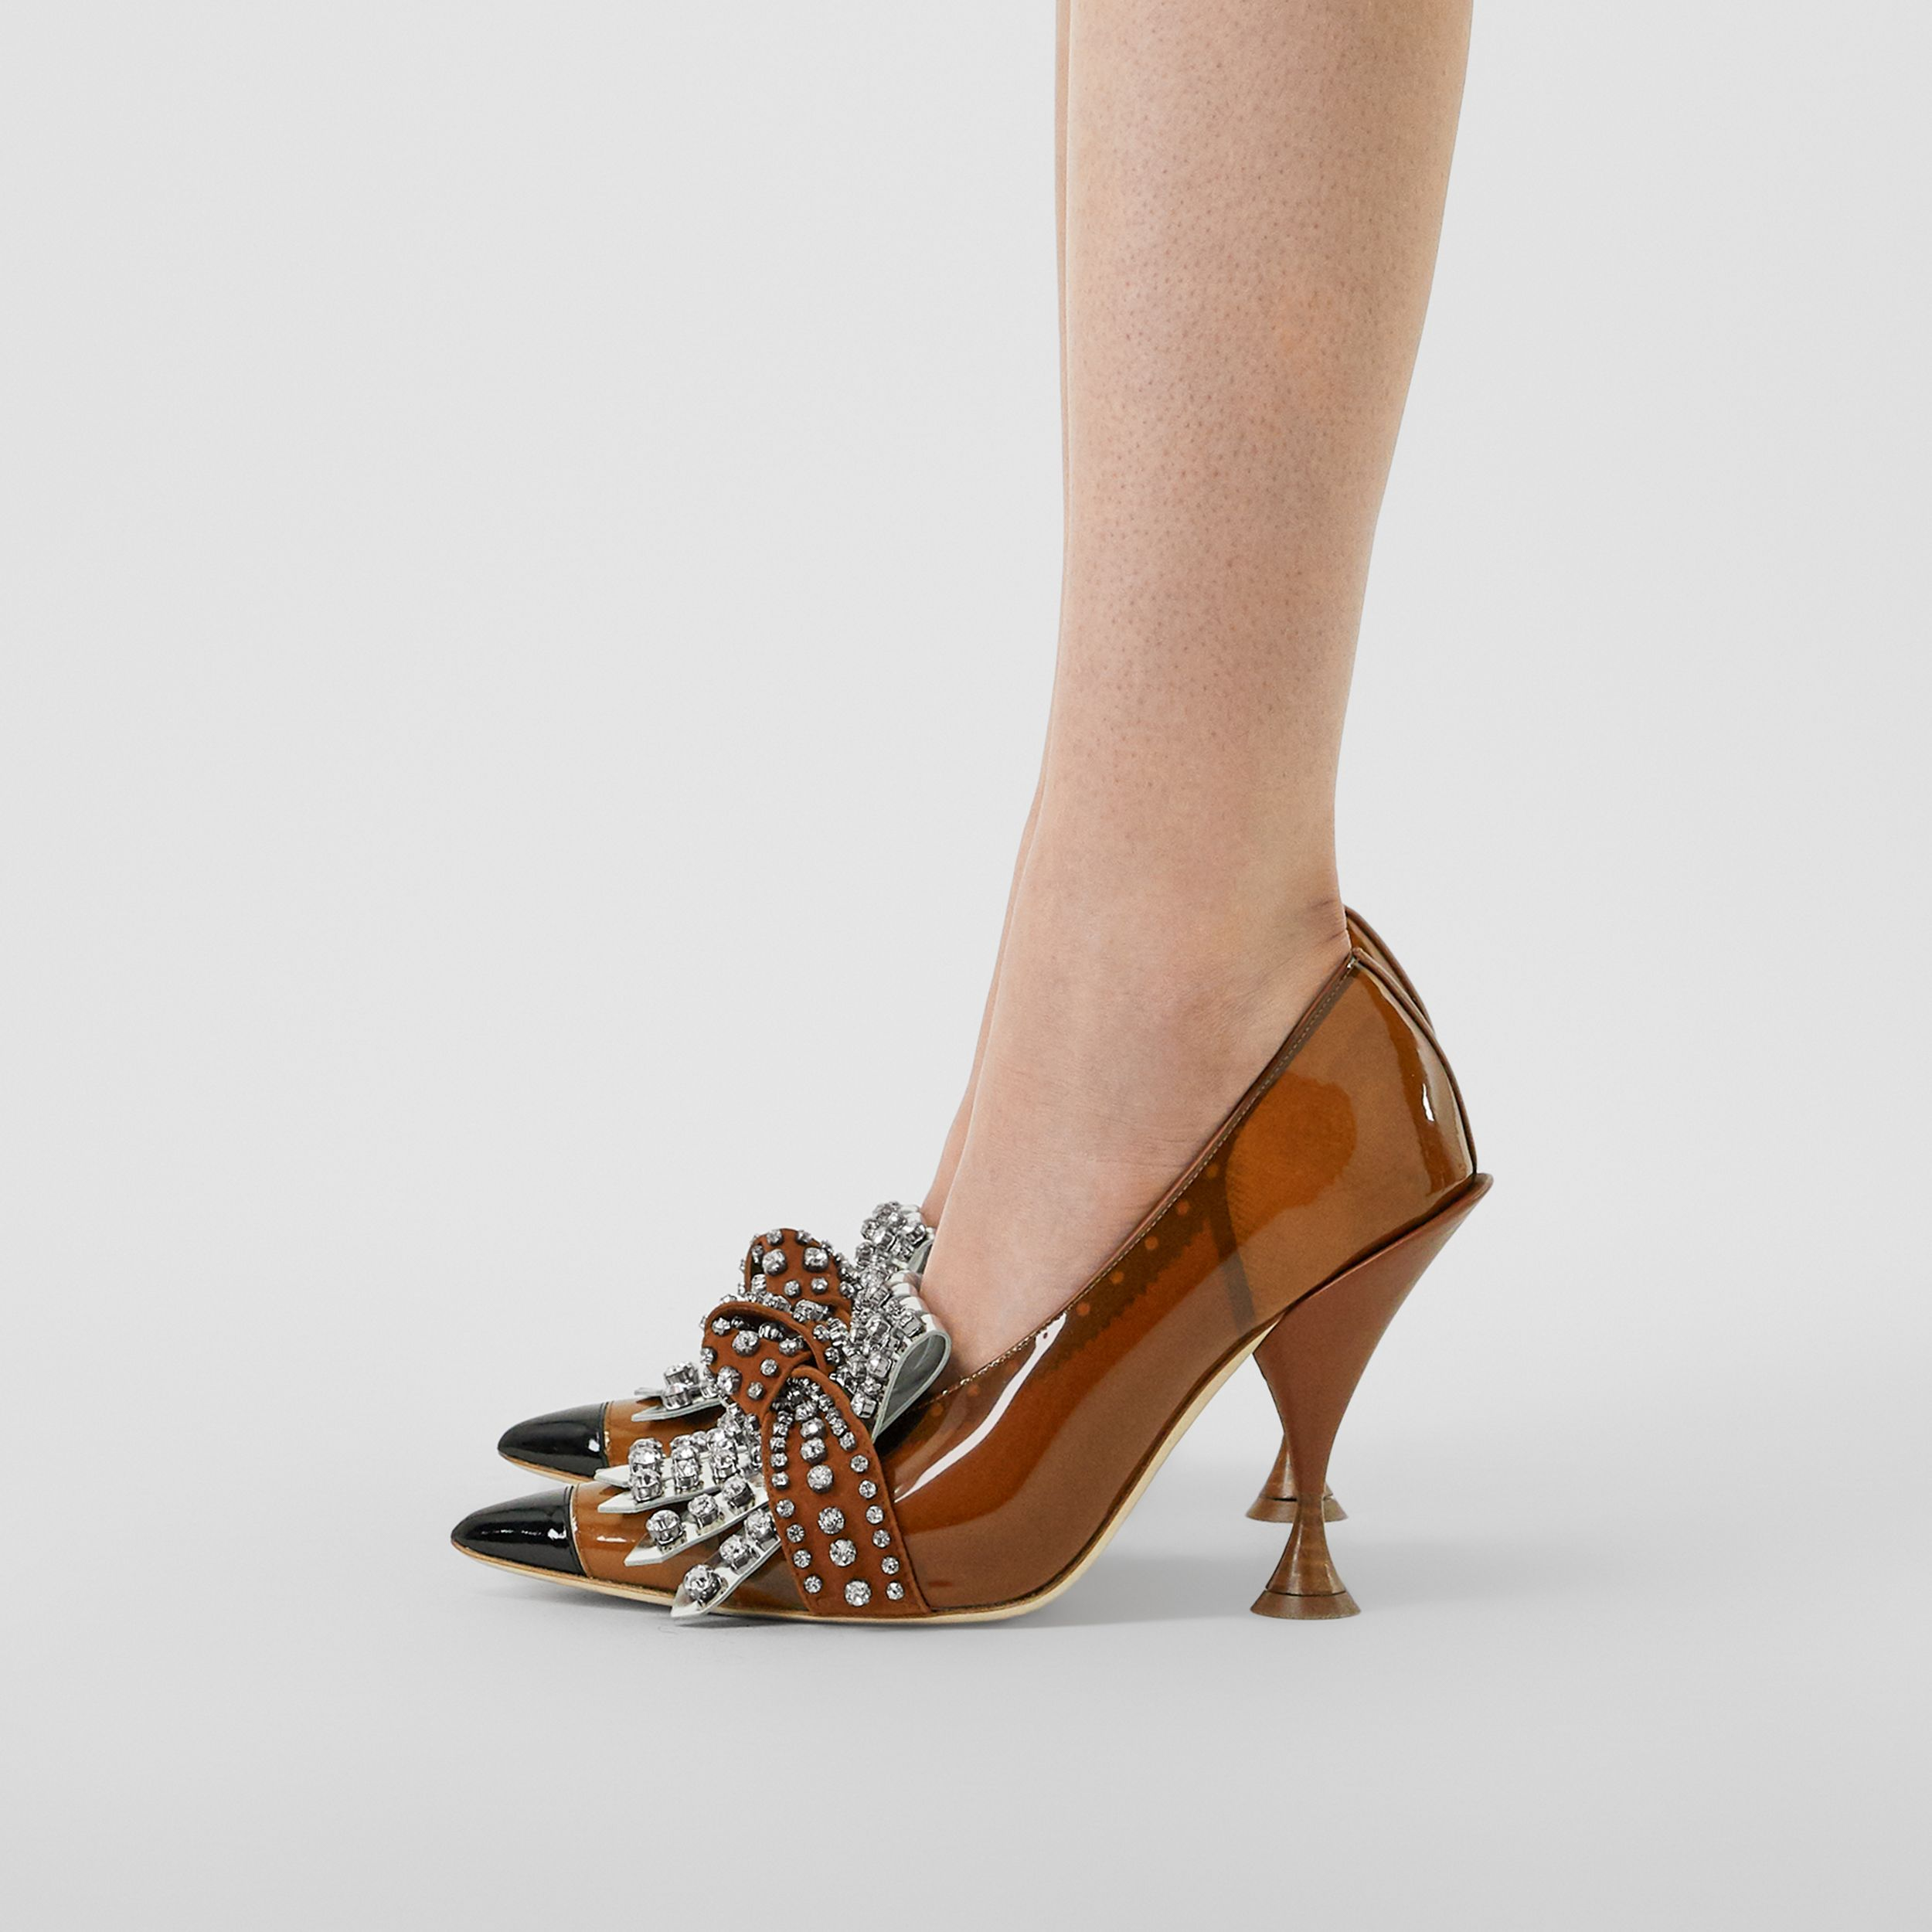 Crystal Kiltie Fringe Vinyl and Leather Point-toe Pumps in Malt Brown/black - Women | Burberry - 3